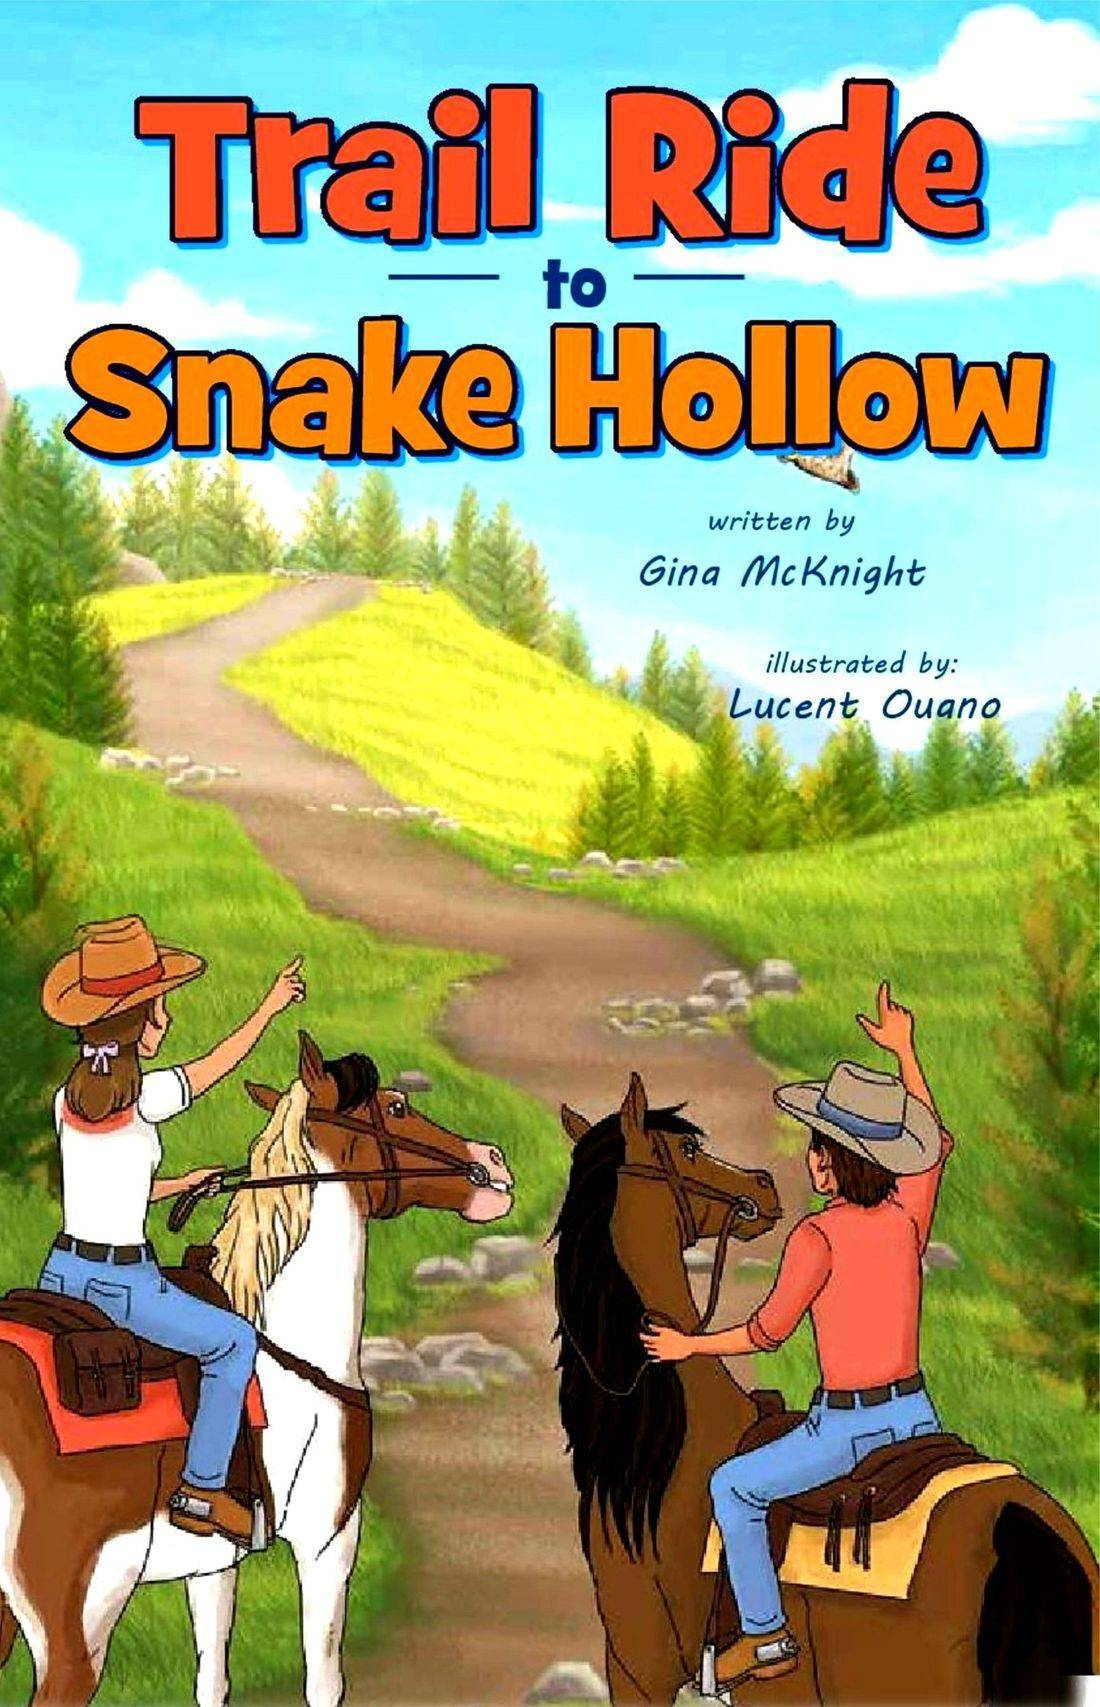 Trail Ride to Snake Hollow by Gina McKnight